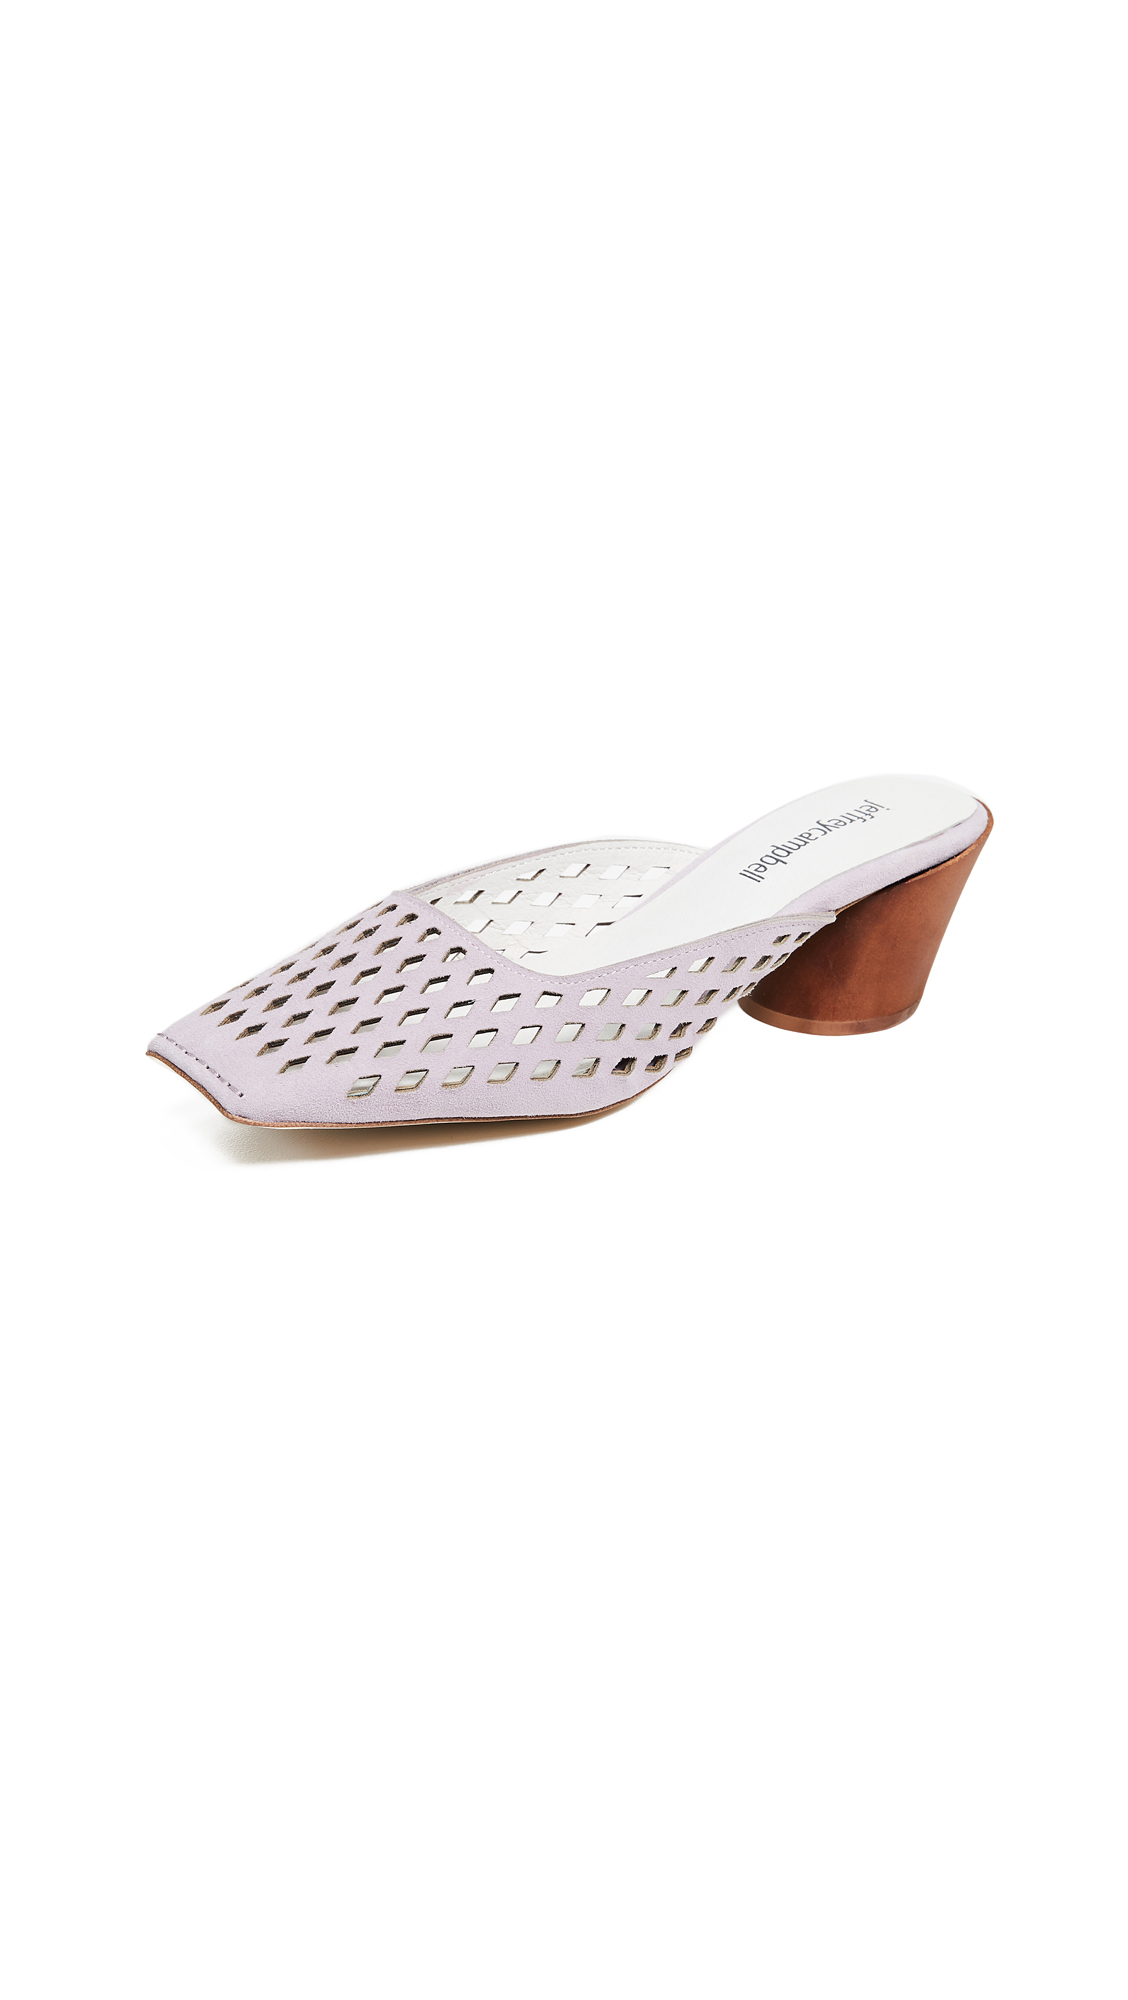 Jeffrey Campbell Lakme Perforated Pumps - Lilac